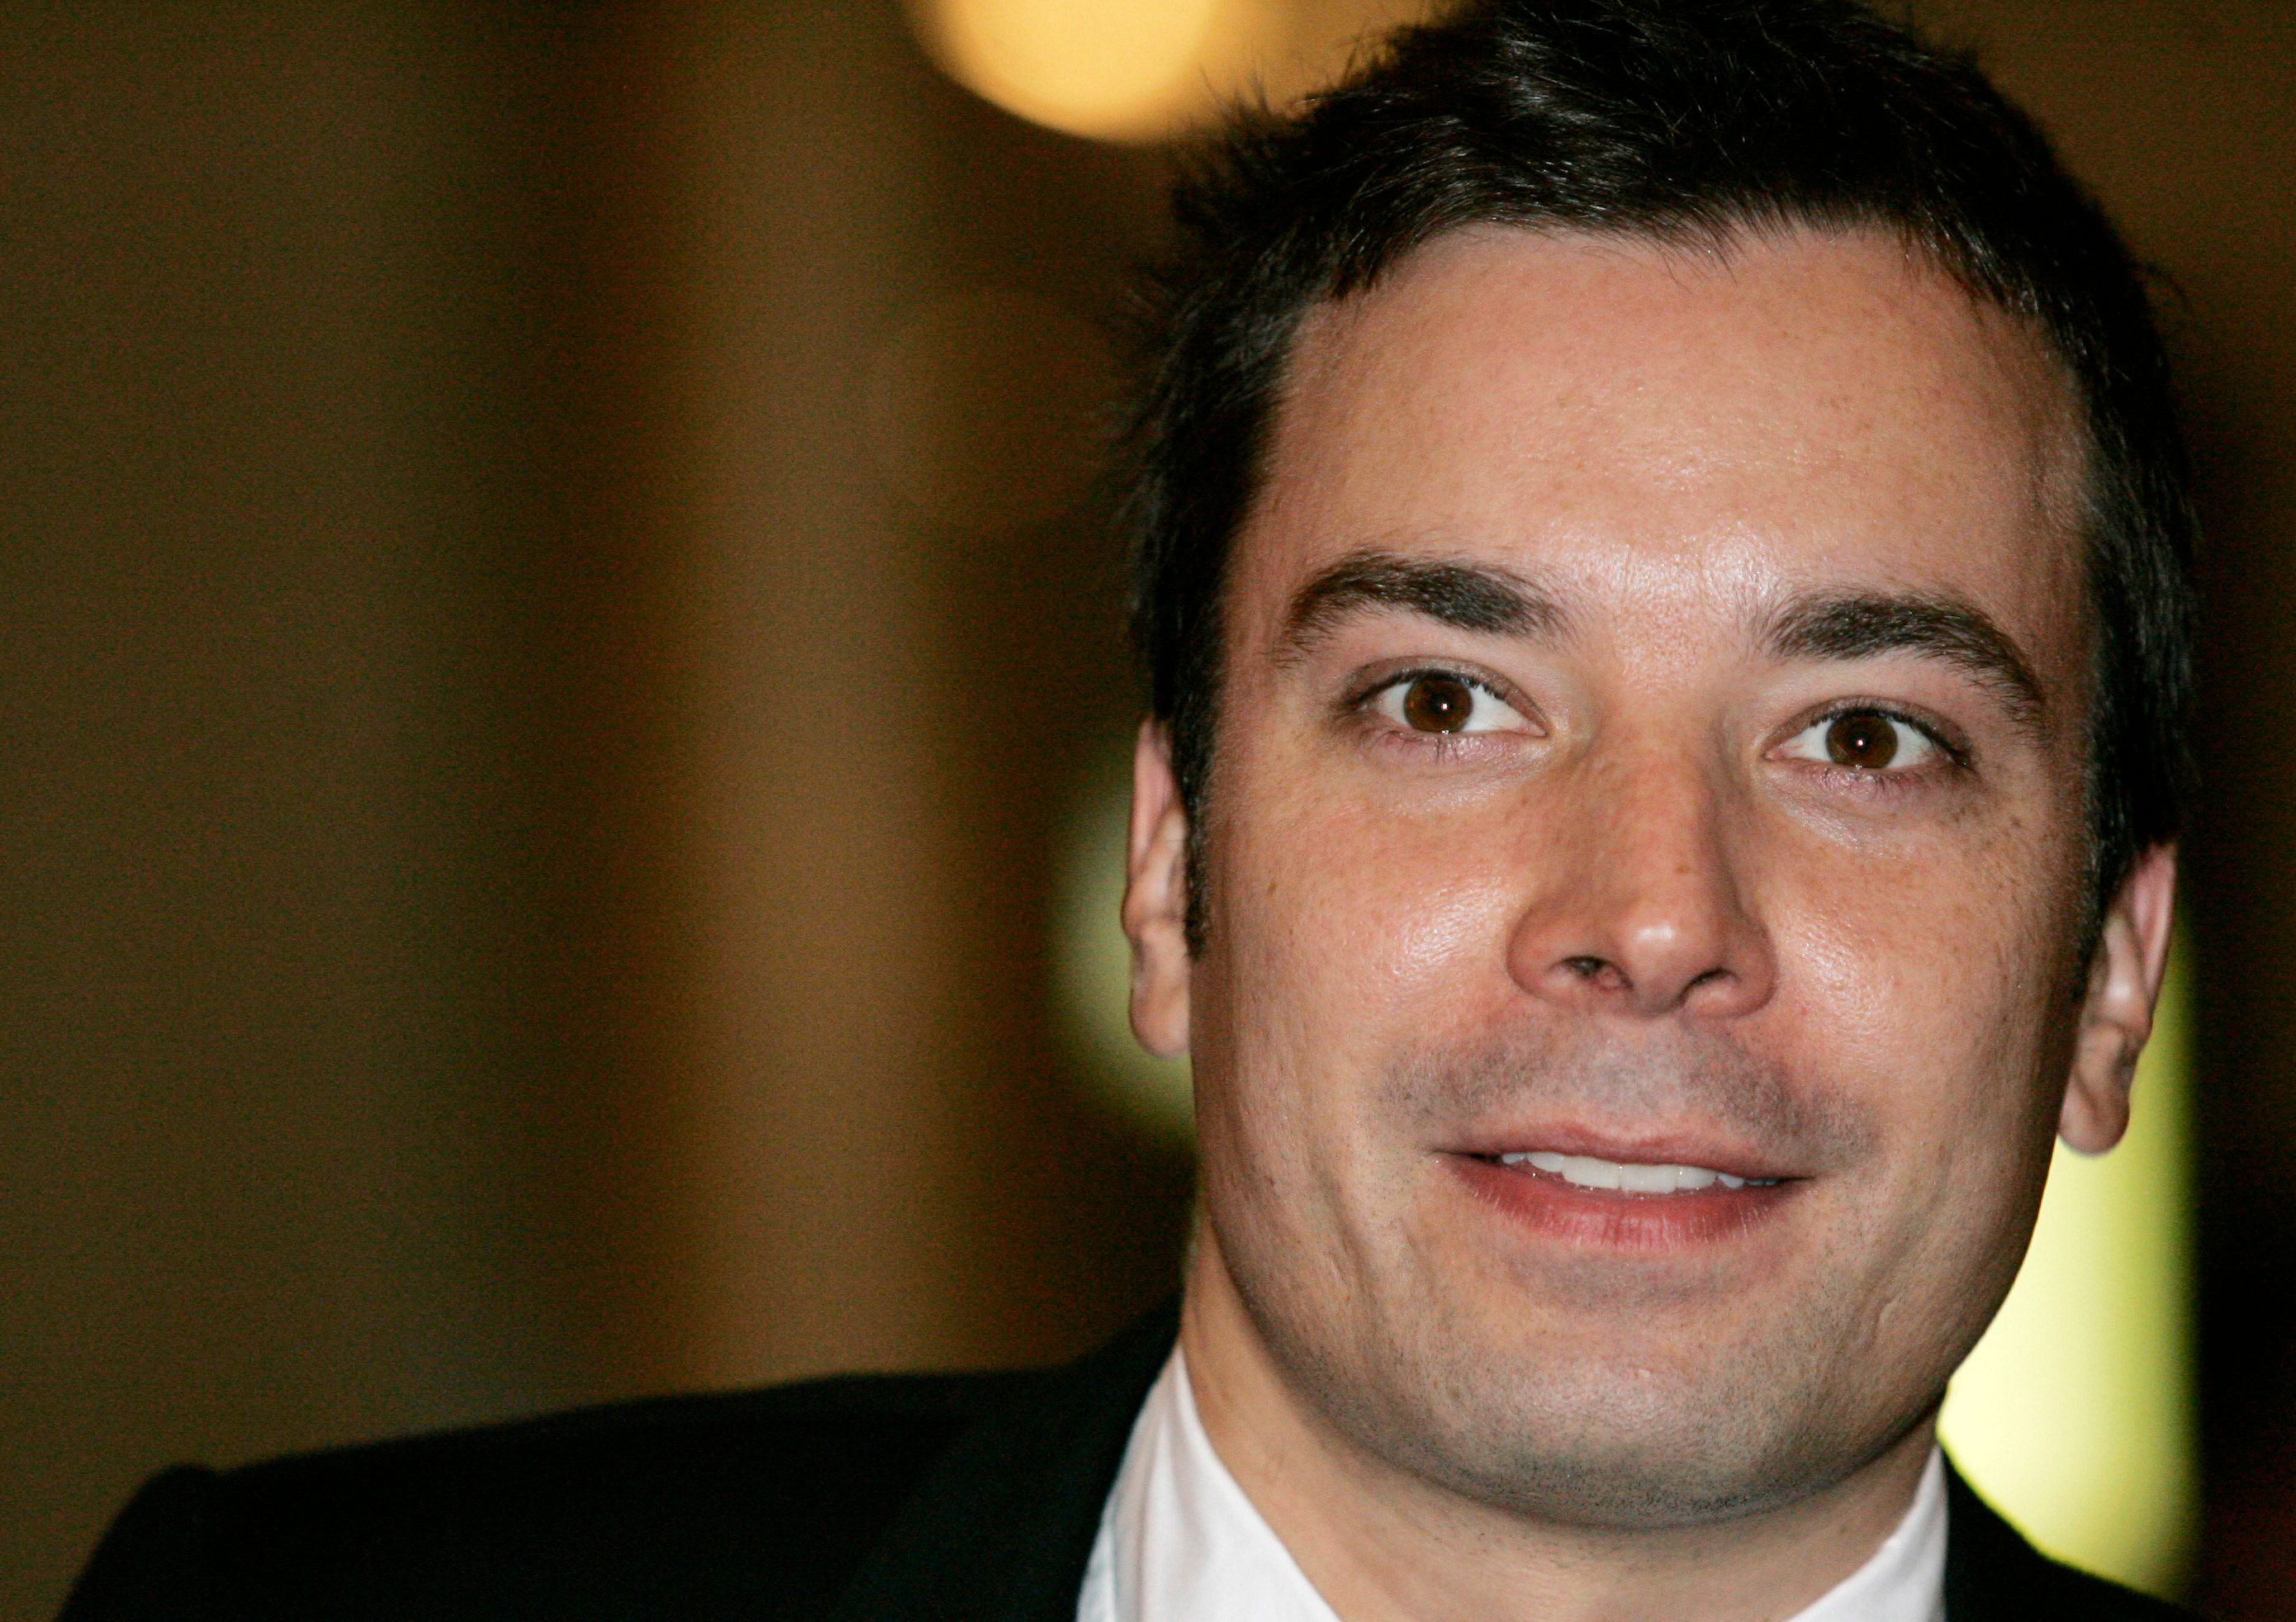 Actor Jimmy Fallon arrives for a program honoring Billy Crystal as the 2007 Mark Twain Prize recipient at the Kennedy Center in Washington, October 11, 2007.  REUTERS/Molly Riley (UNITED STATES)